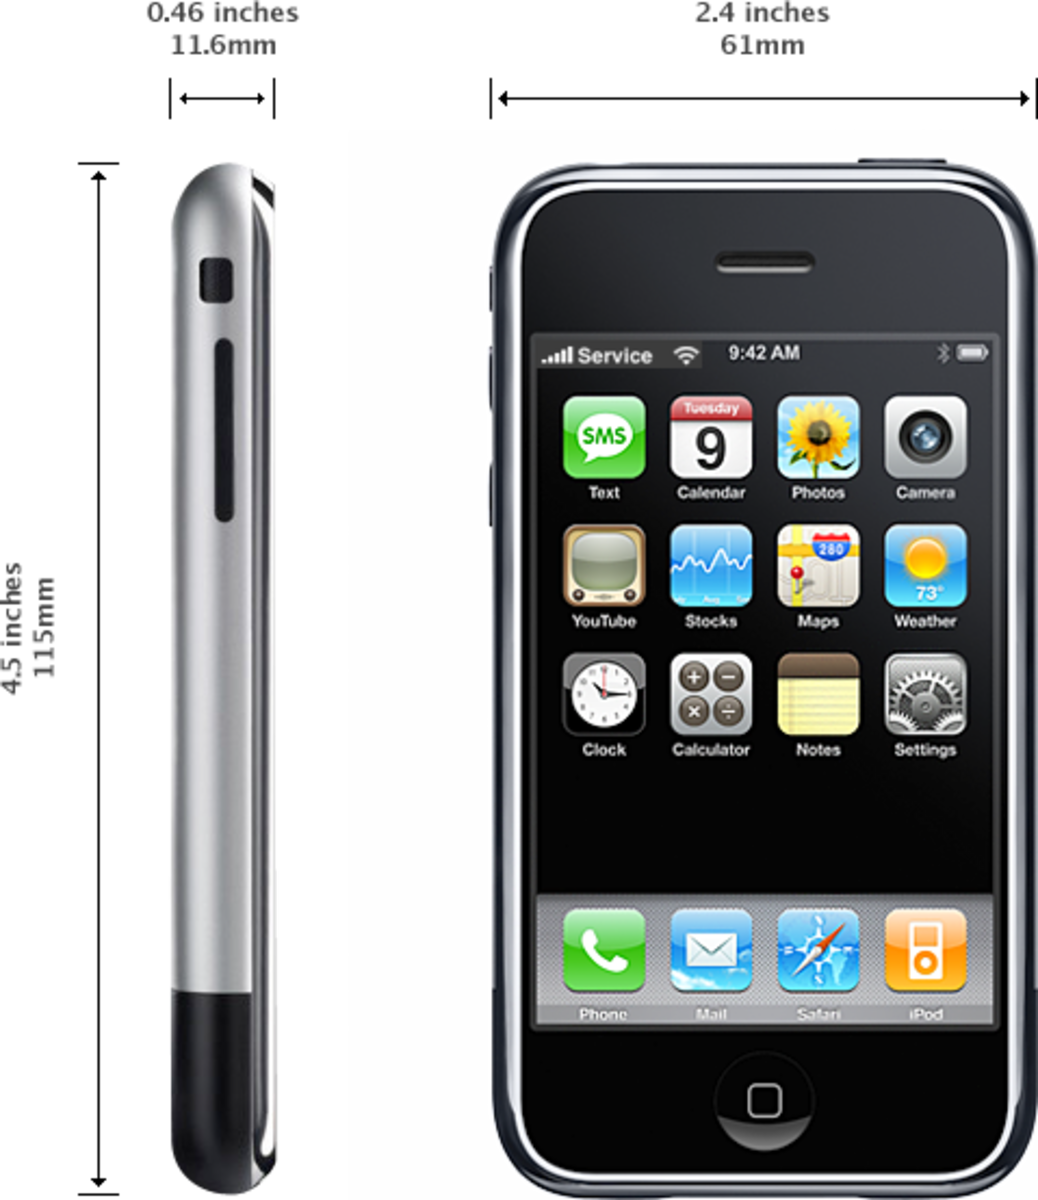 The original iPhone came with 4, 8 or 16 GB of storage space and featured a stainless steel back.